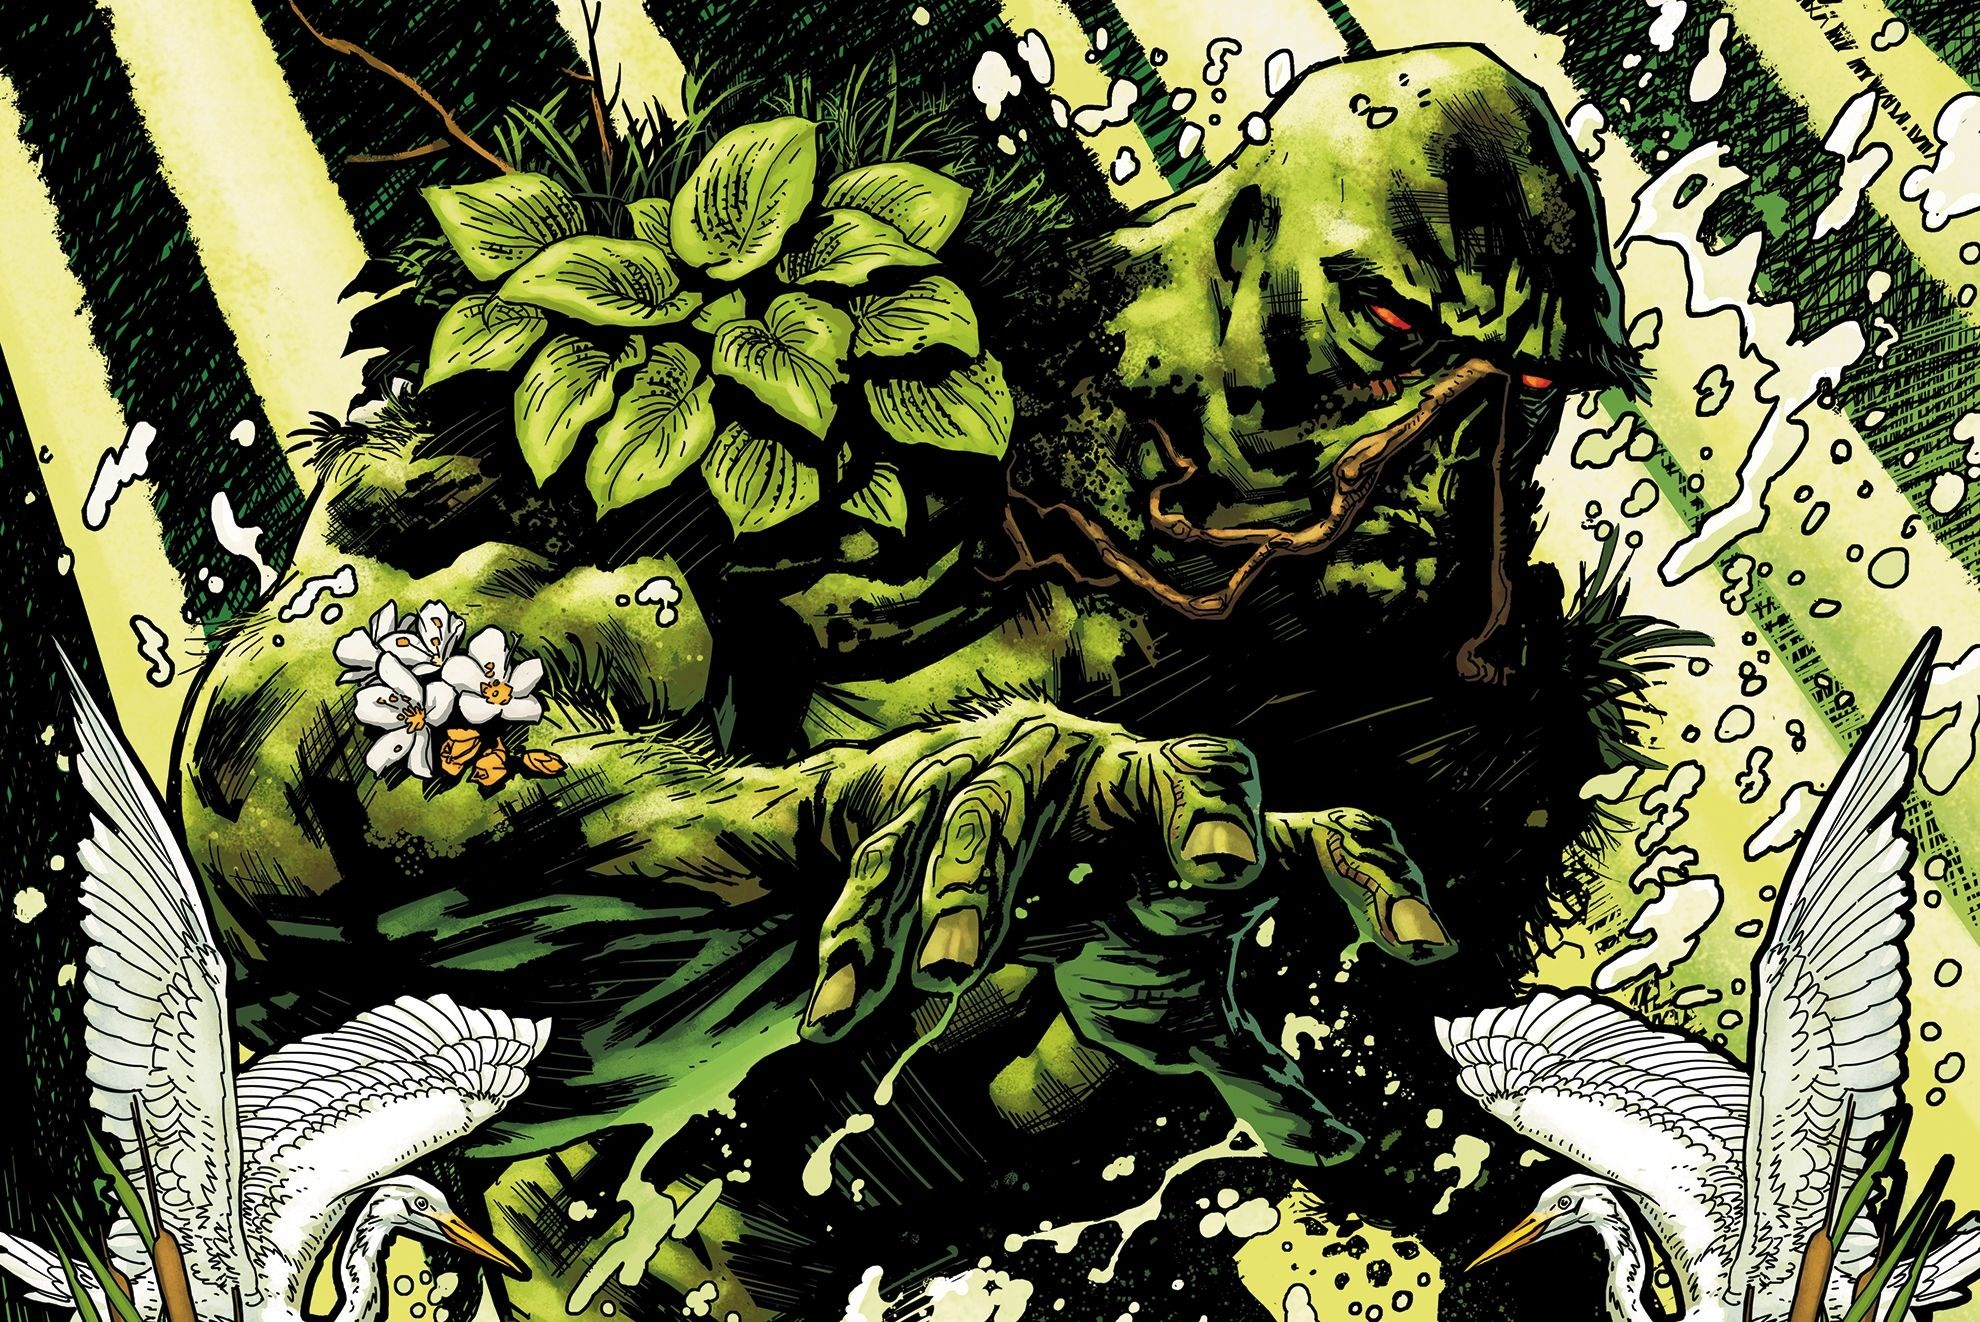 1980x1322px swamp thing wallpaper for mac computers by Webber Mason